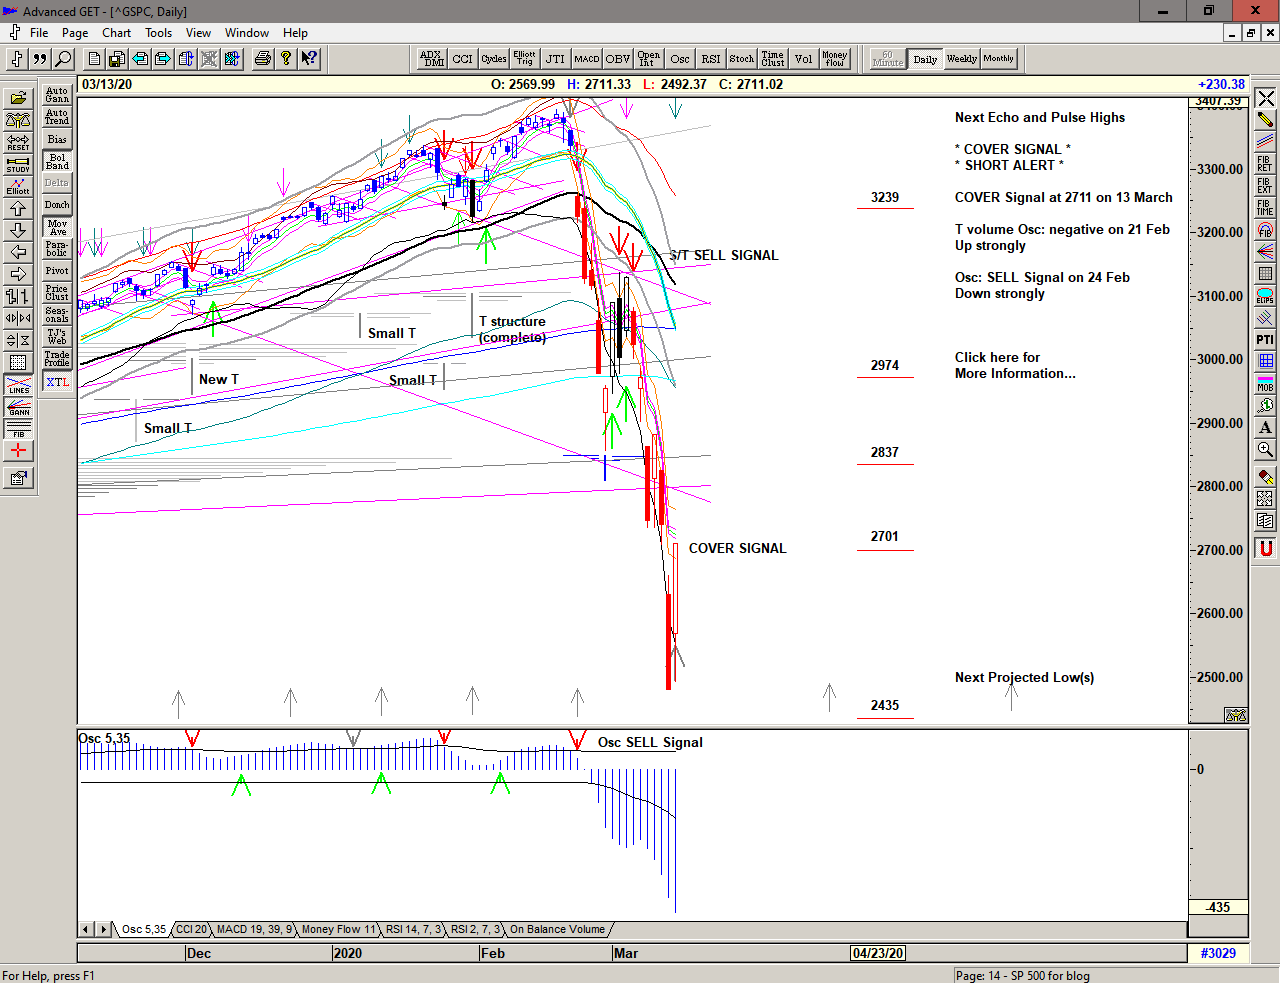 Daily chart of S&P 500 for 16 March 2020